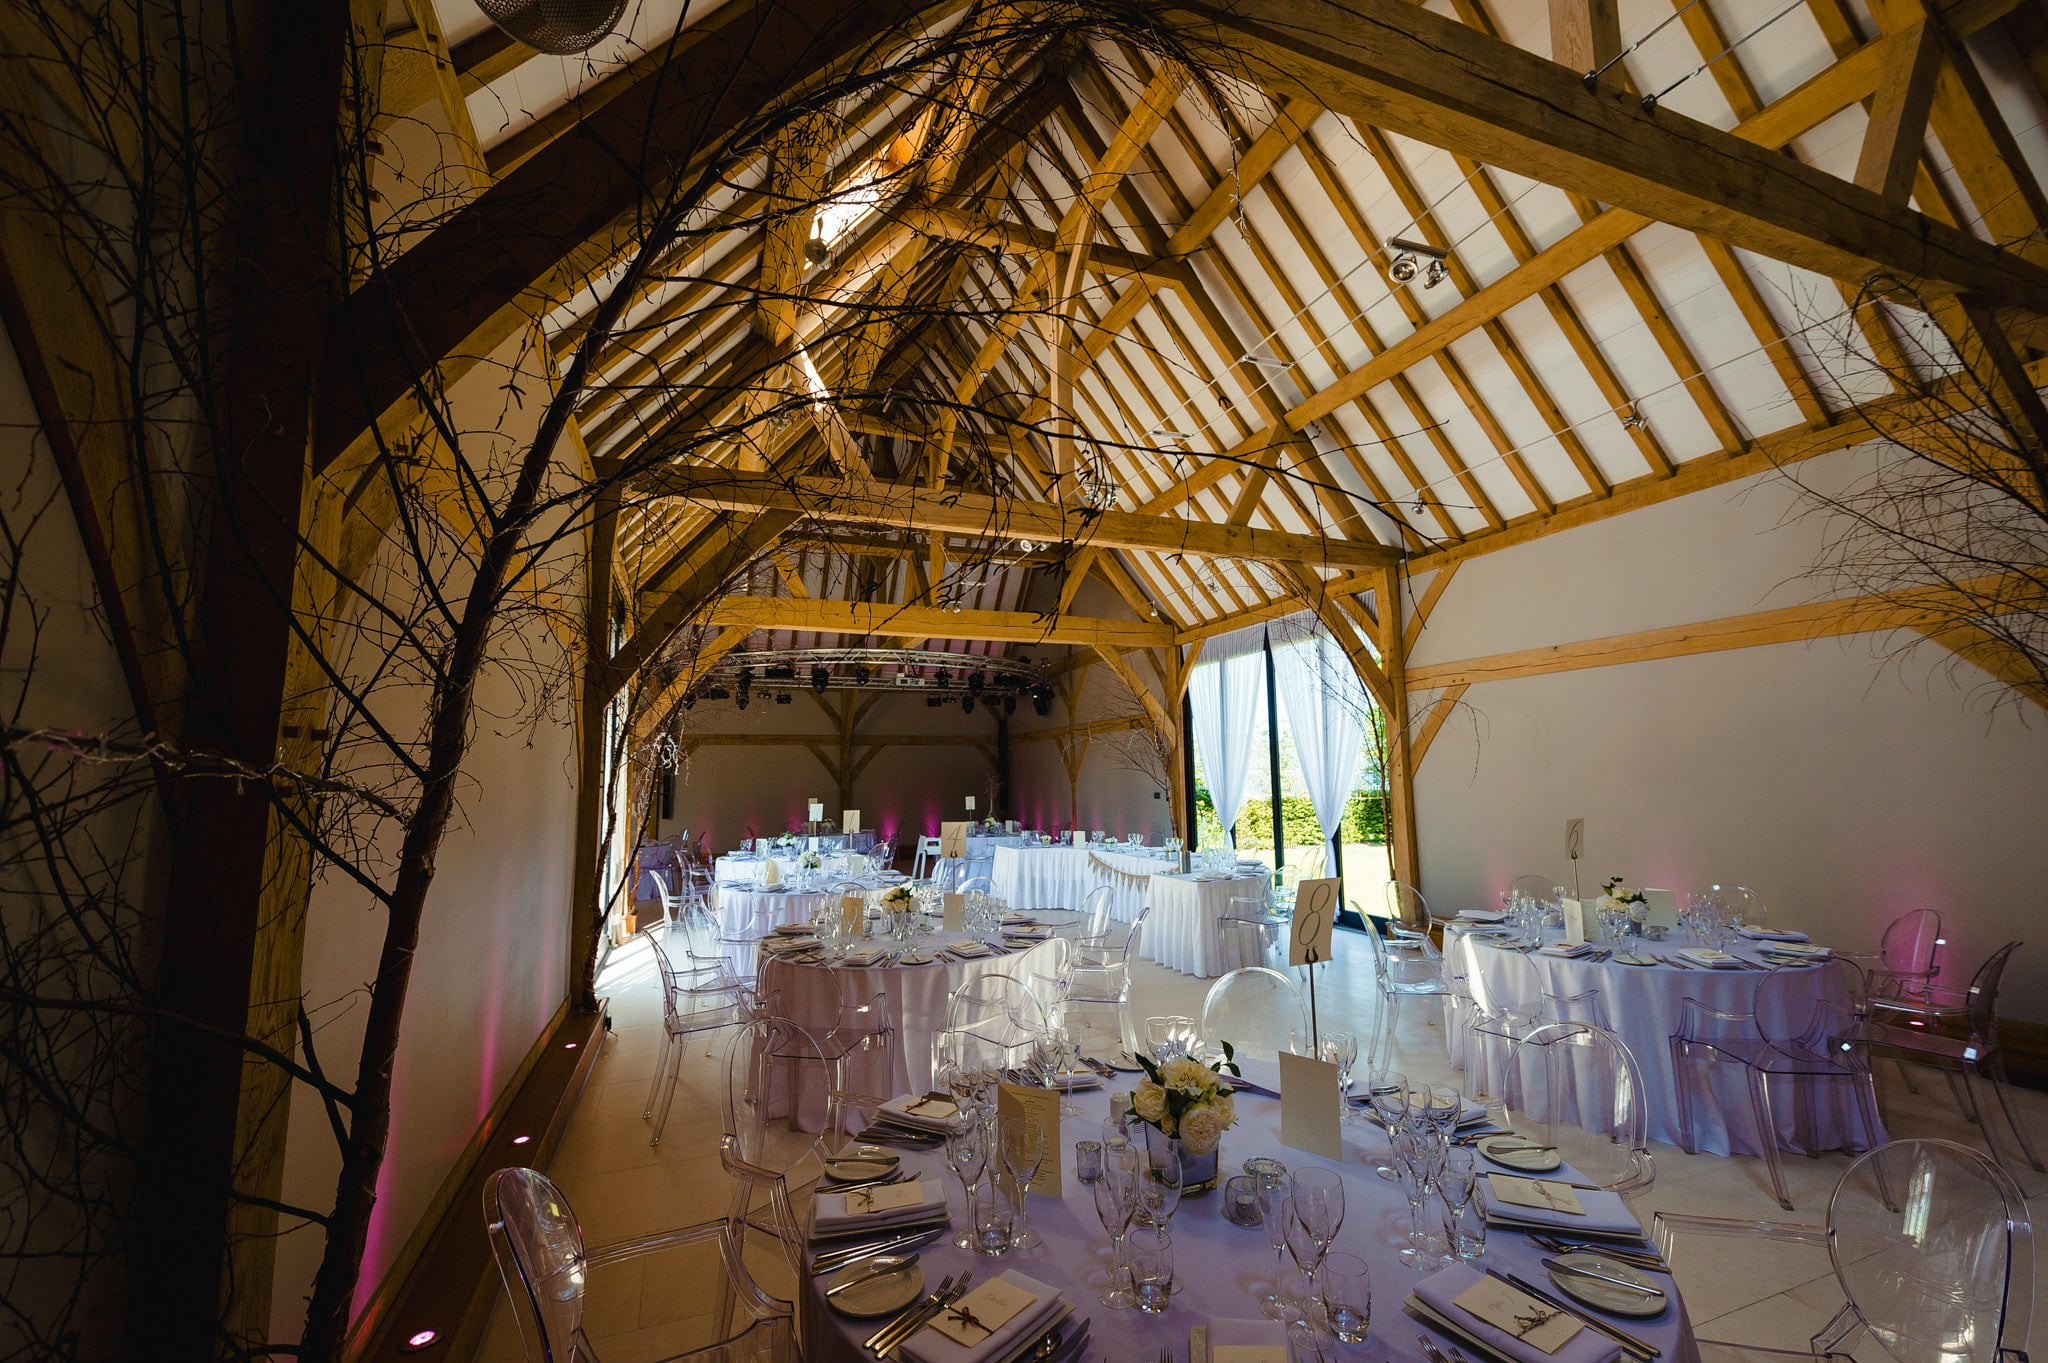 wedding at redhouse barn 1 - Wedding at Redhouse Barn in Stoke Prior, Worcestershire